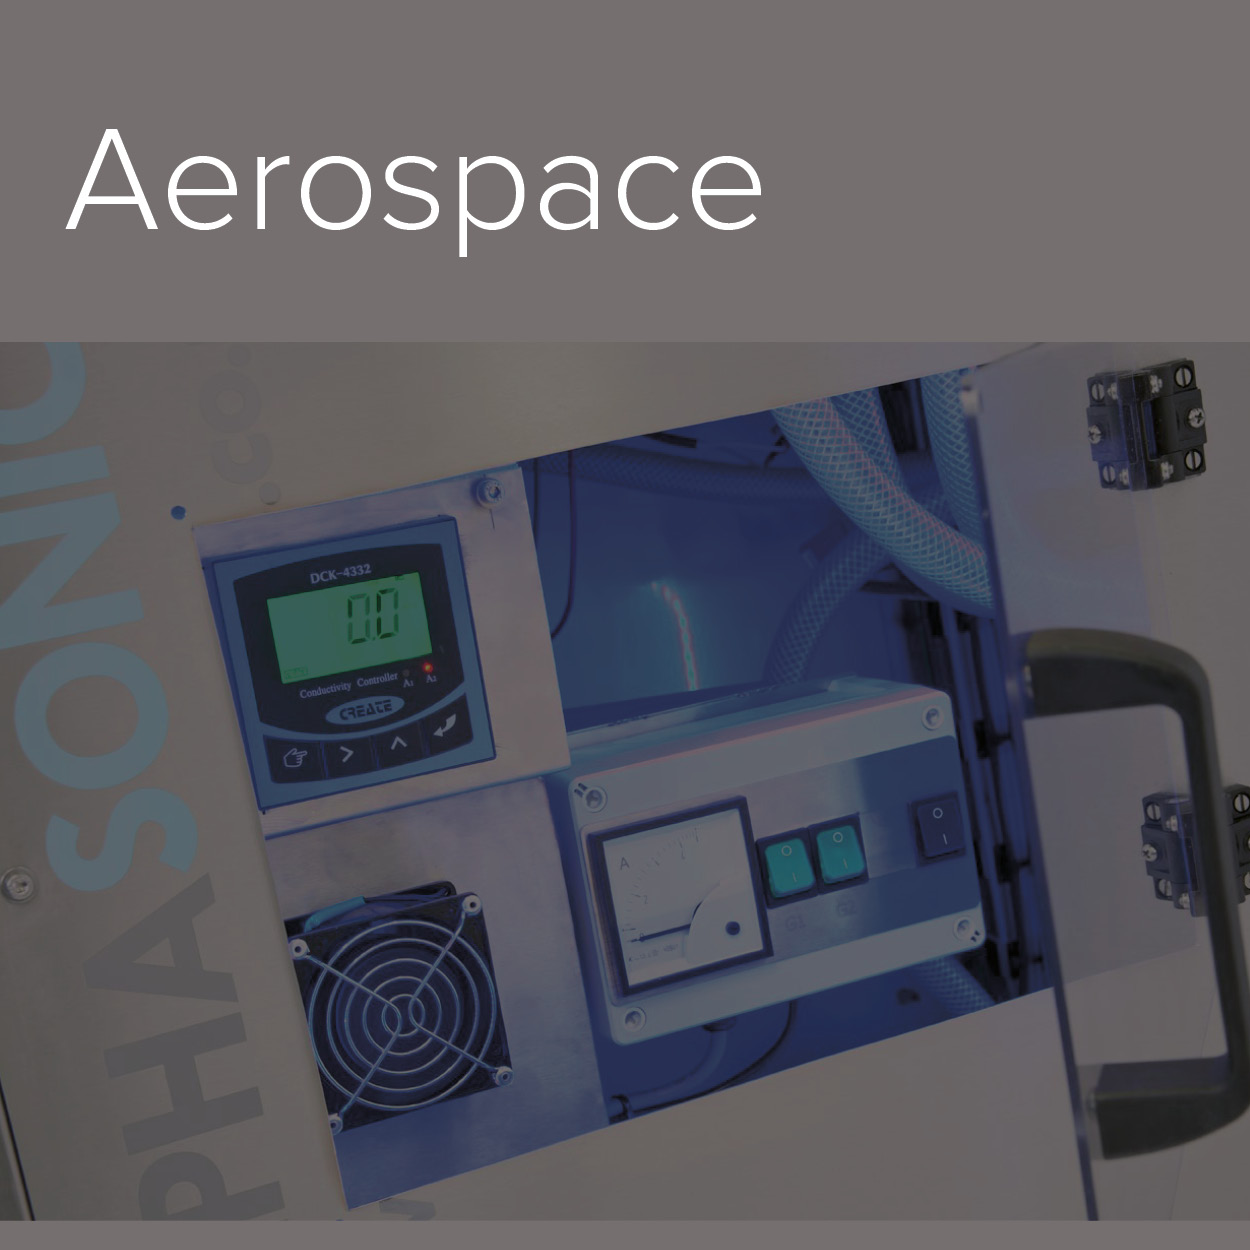 A decorative image of the Aerospace industry in which Alphasonics cater to.